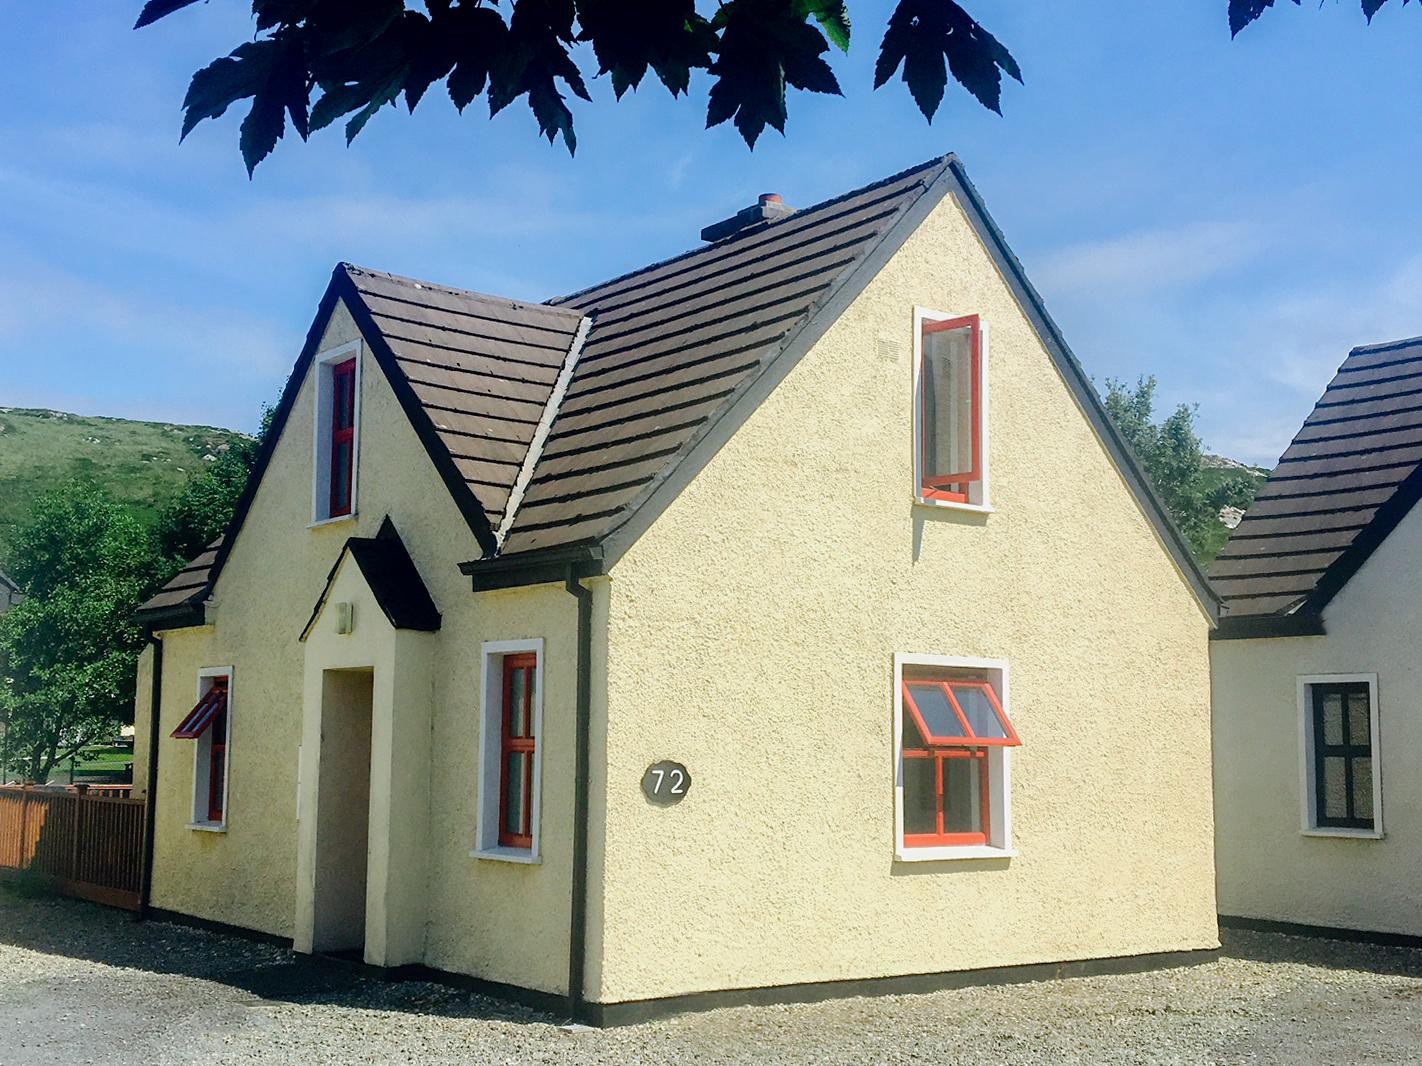 Holiday Cottage Reviews for 72 Clifden Glen - Self Catering Property in Clifden, Galway